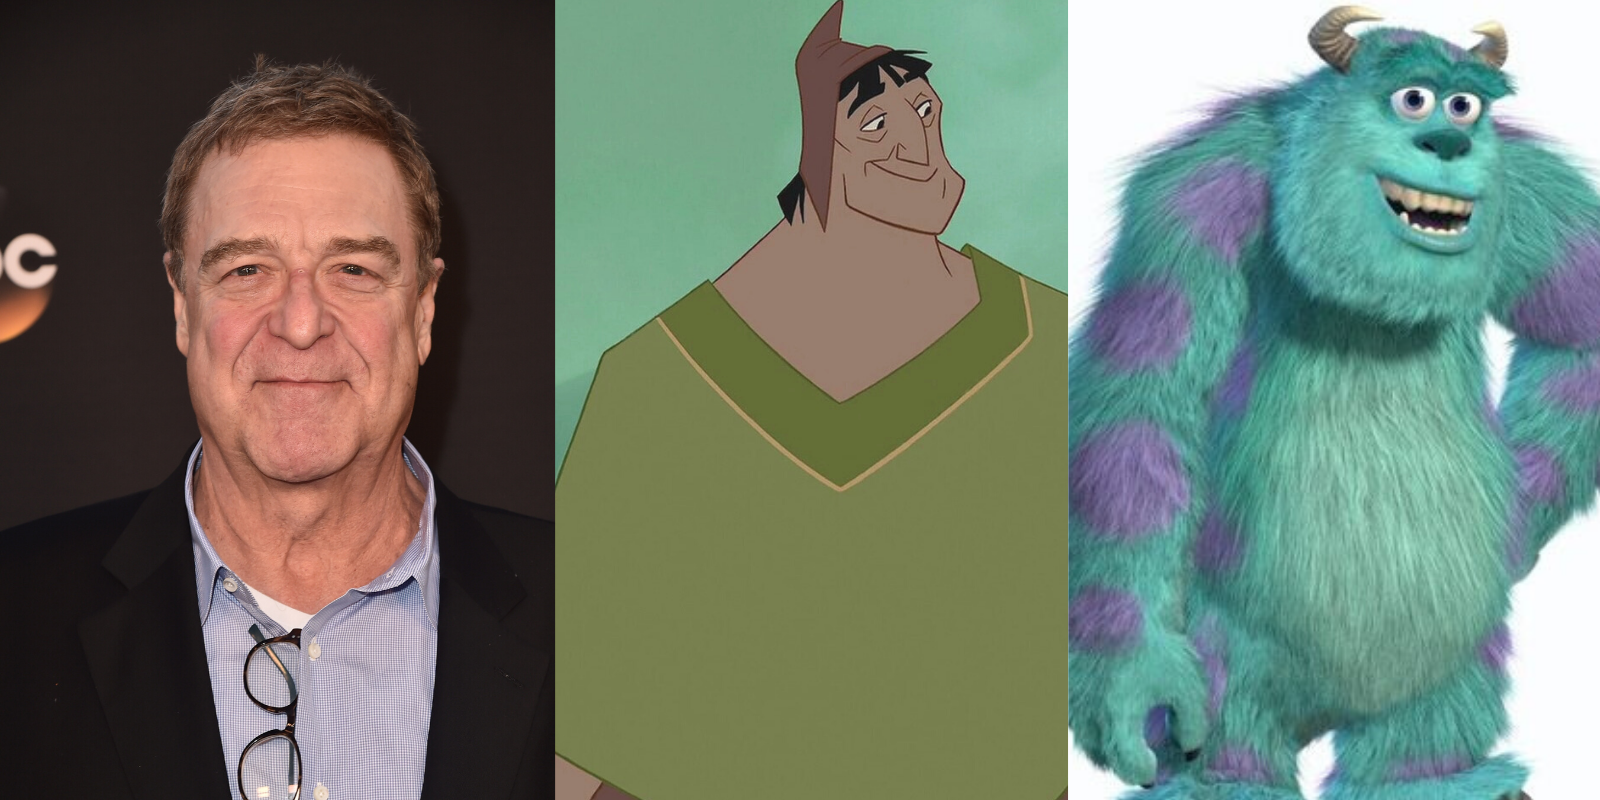 John Goodman voiced both Pacha in 'The Emperor's New Groove' and Sully in 'Monsters Inc'. Photo by Alberto E. Rodriguez via Getty Images/@2000 Disney All Rights Reserved.